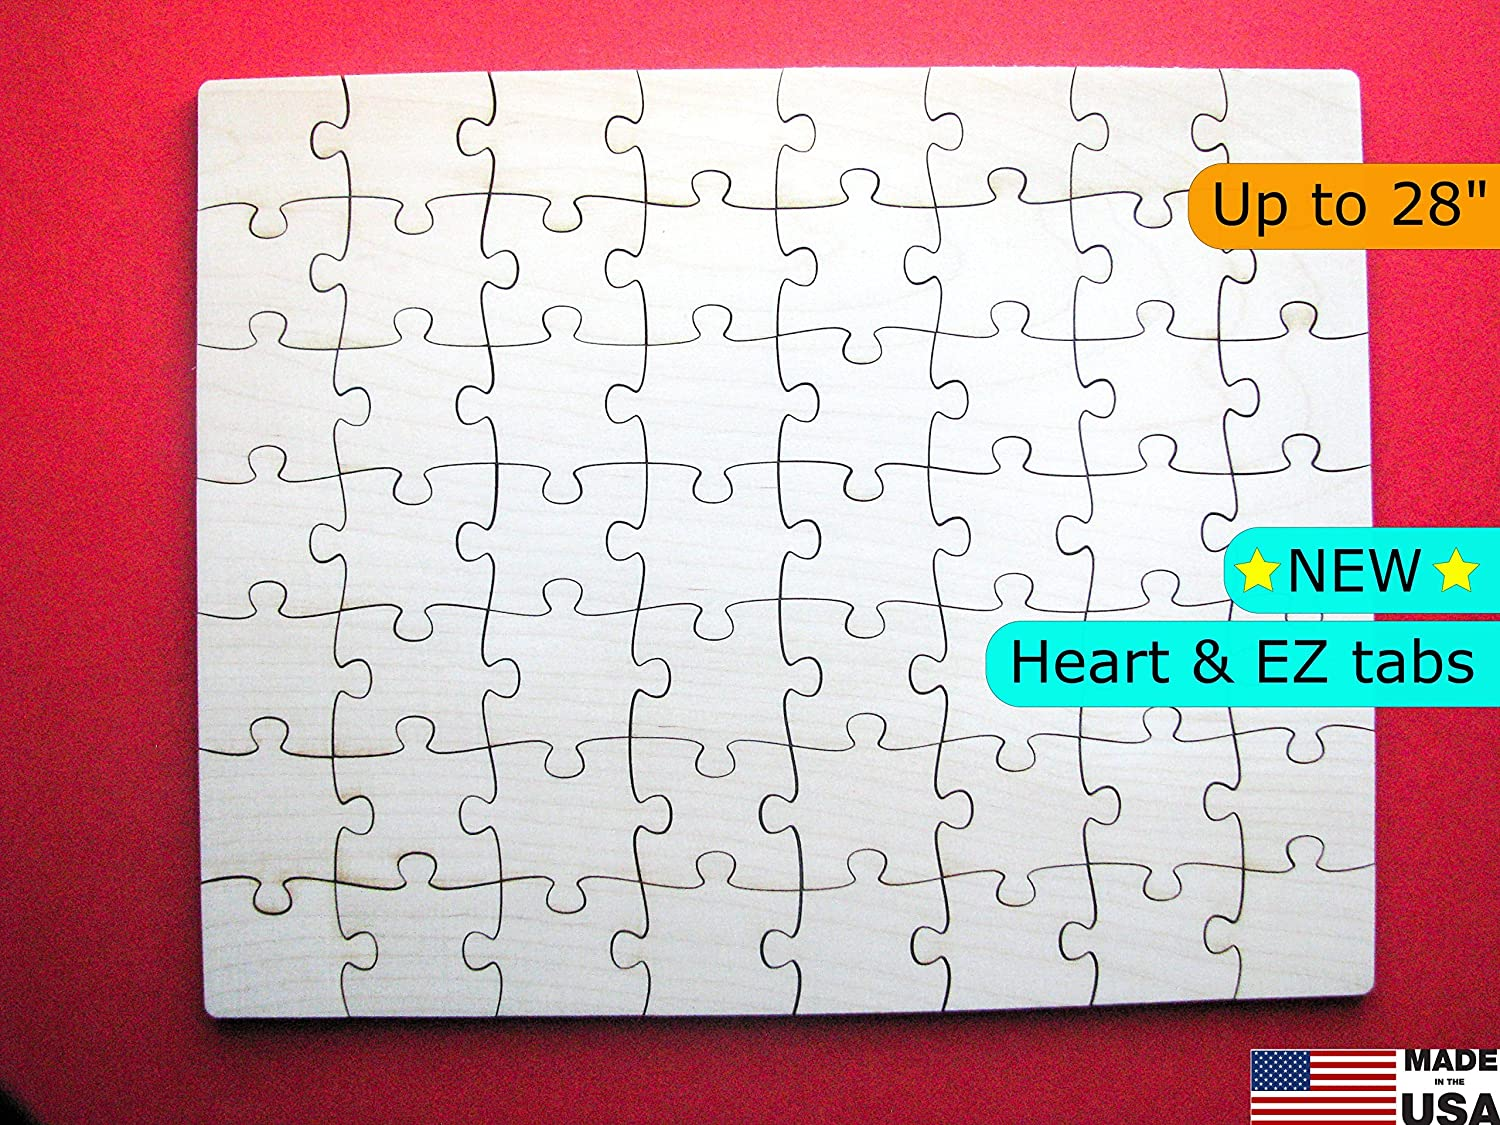 Guestbook Alternative wooden puzzle for weddings, graduations, anniversaries, baby shower, sweet 16